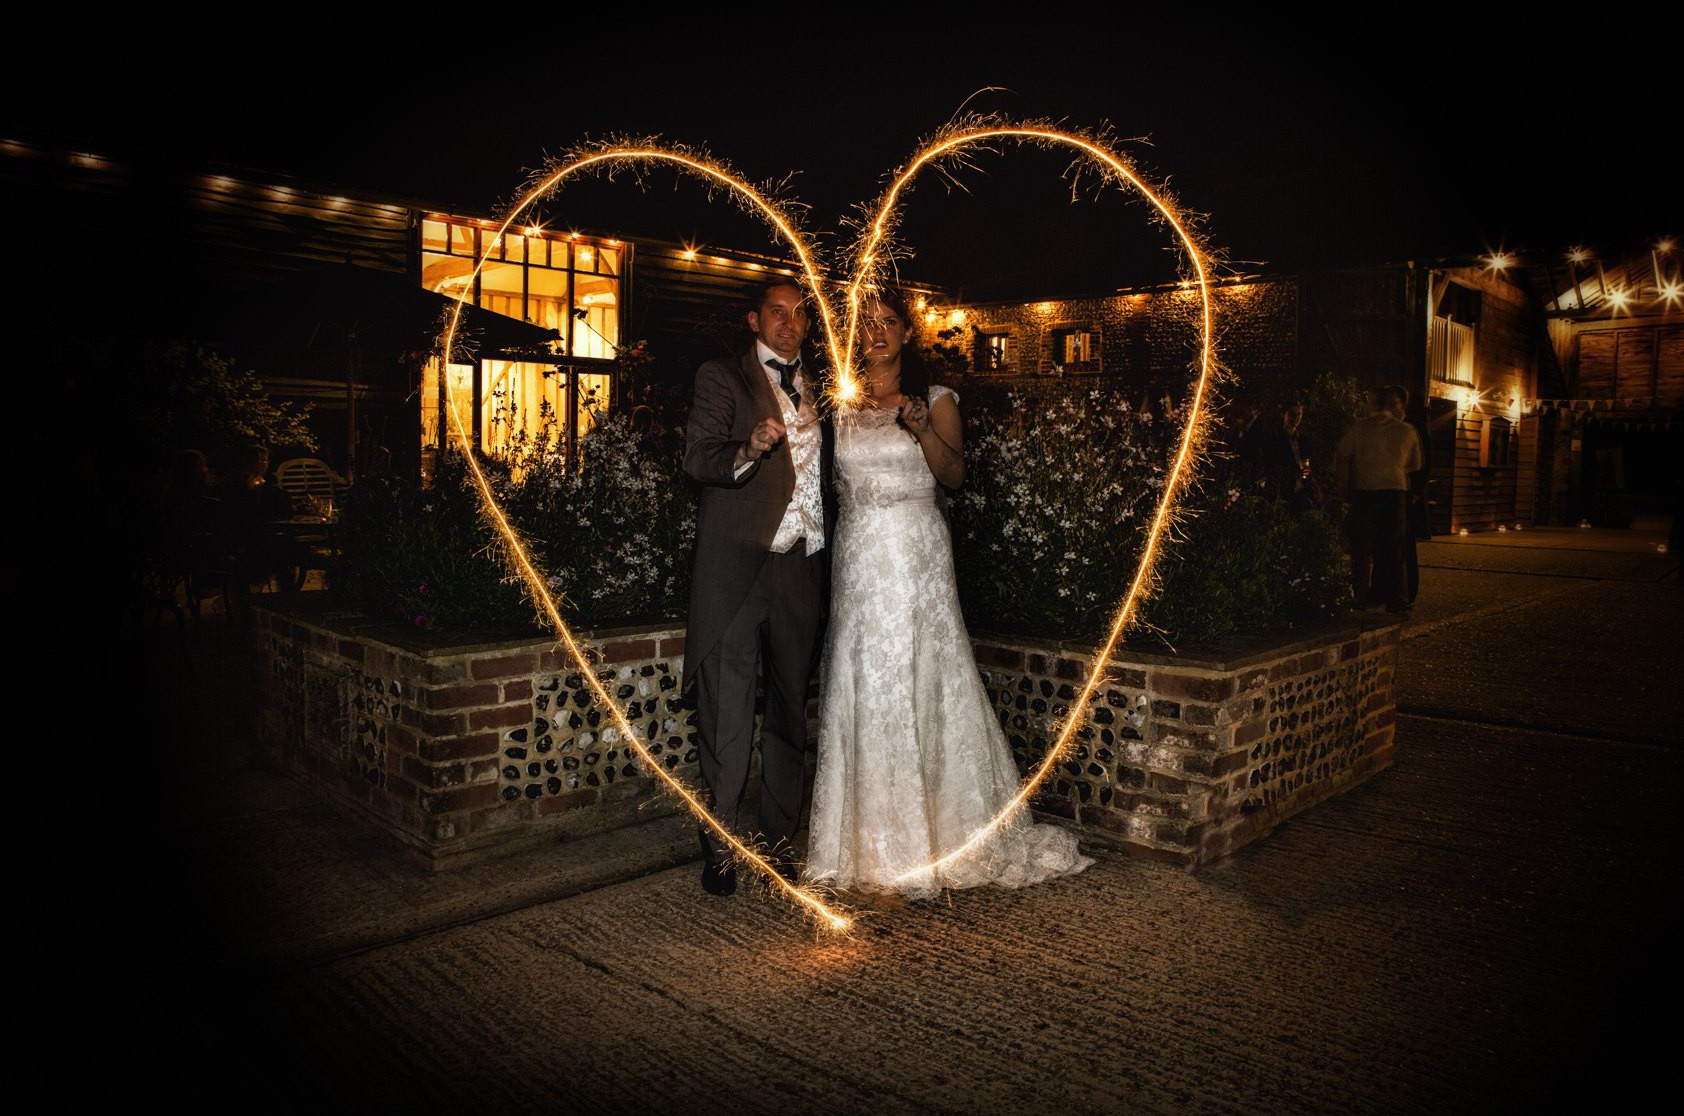 Upwaltham Barns Sparkler Wedding